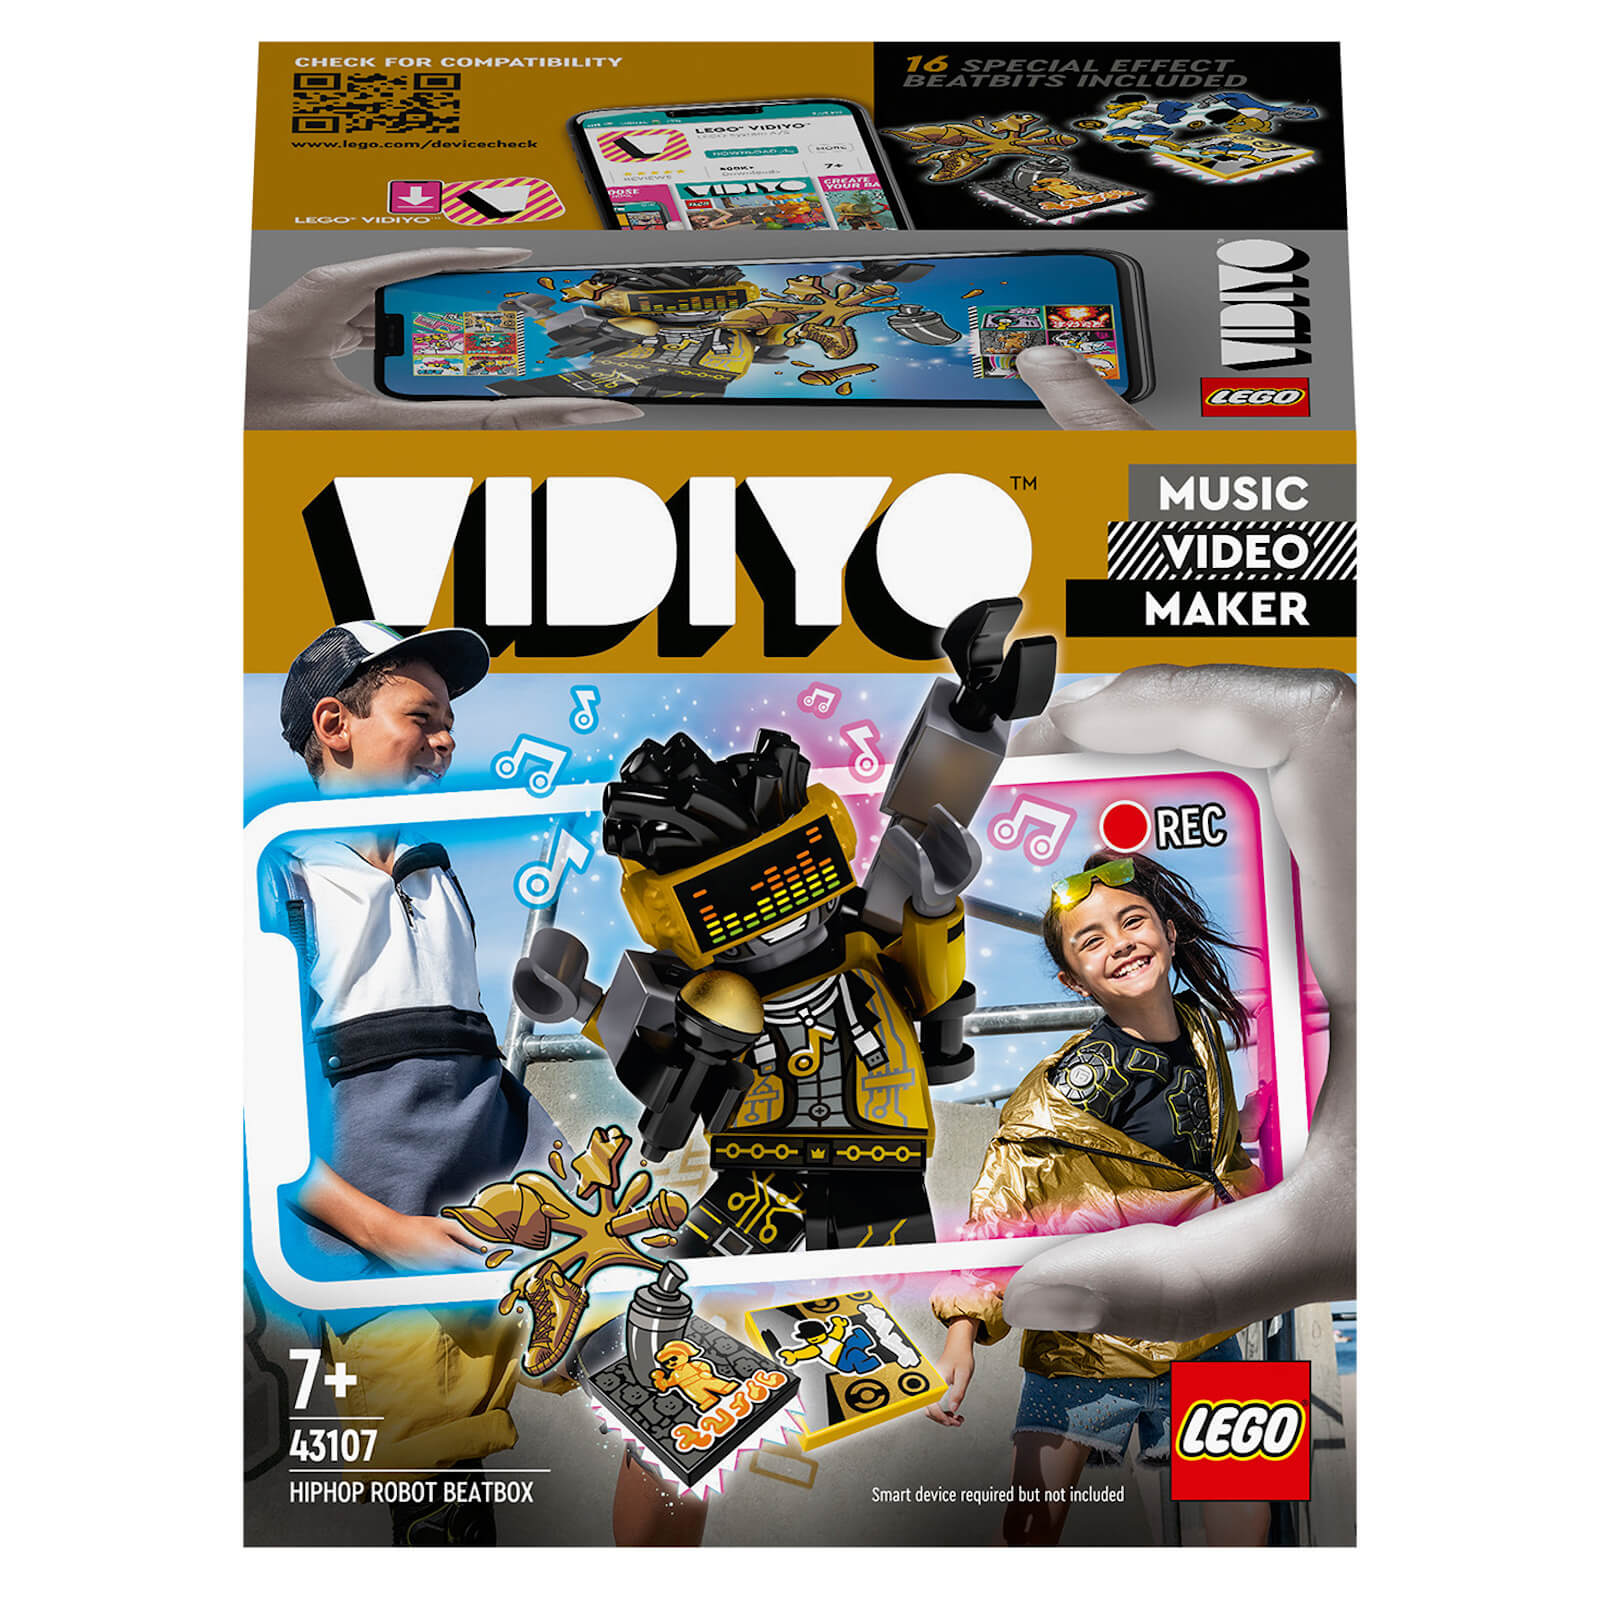 LEGO VIDIYO HipHop Robot BeatBox Music Video Maker Toy (43107)